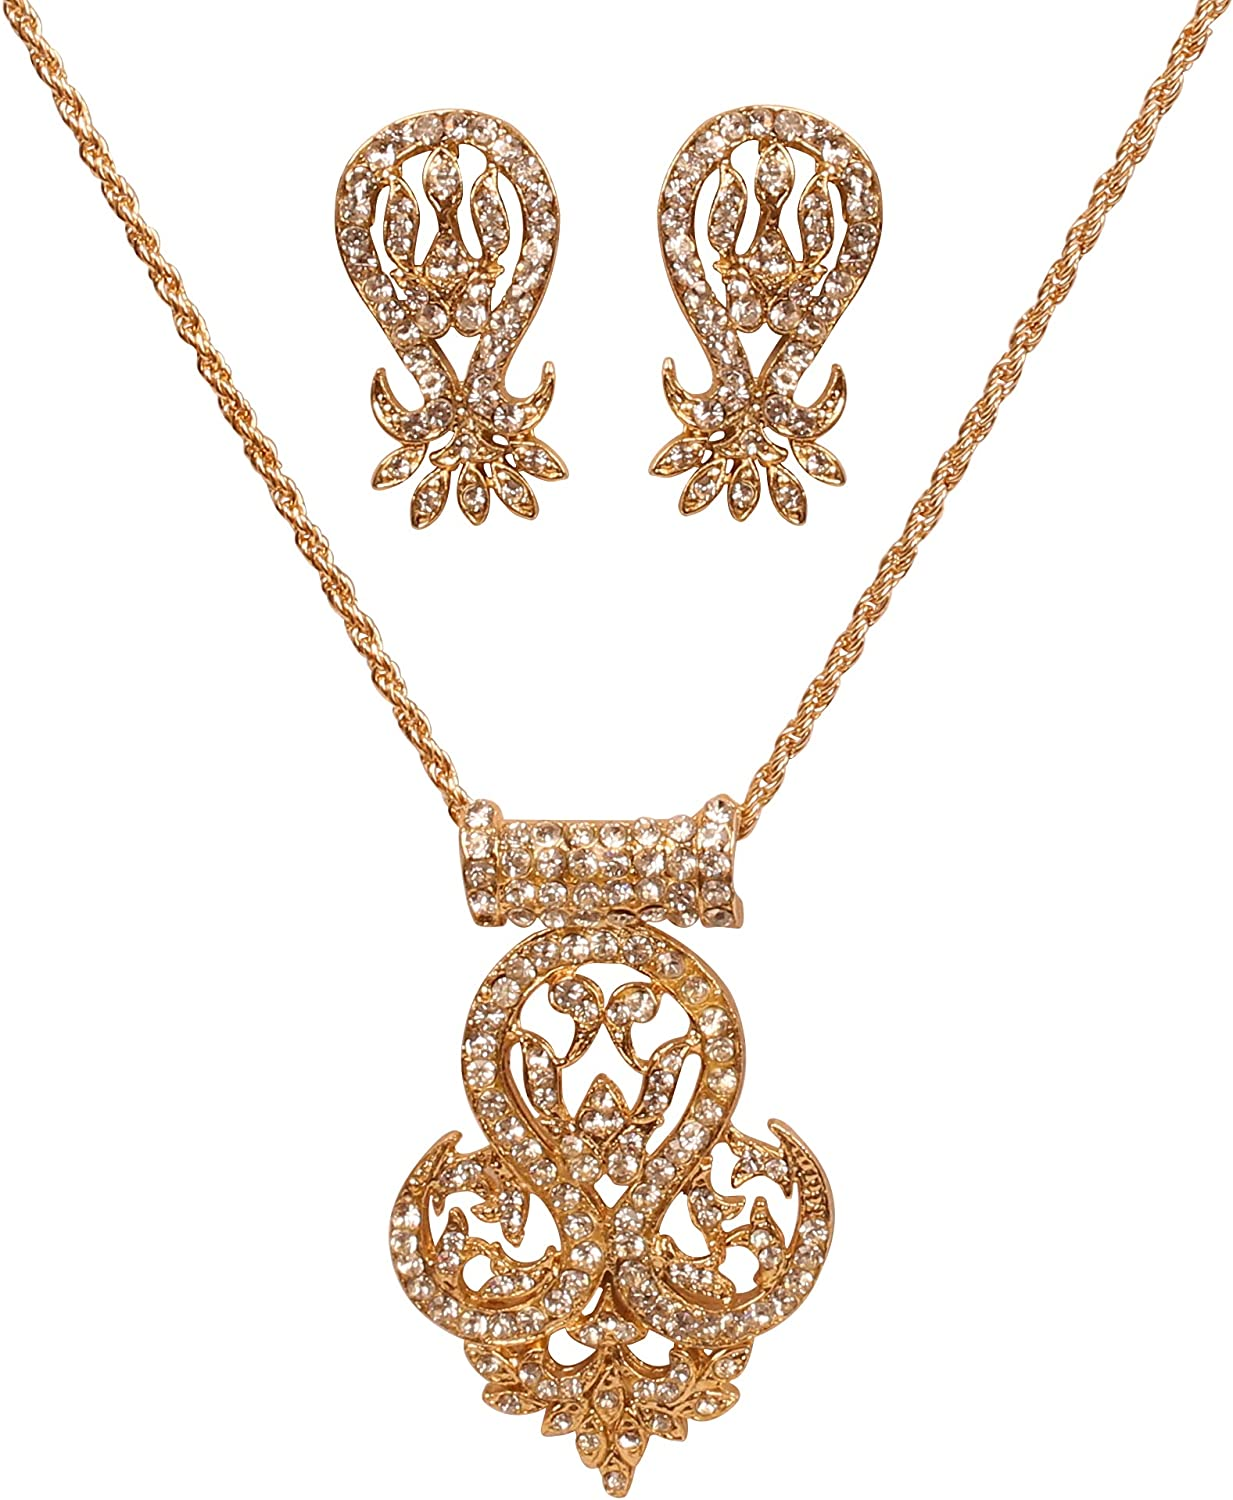 Touchstone Indian Sale special price Bollywood Delicate P Designer Jacksonville Mall Creative Jewelry